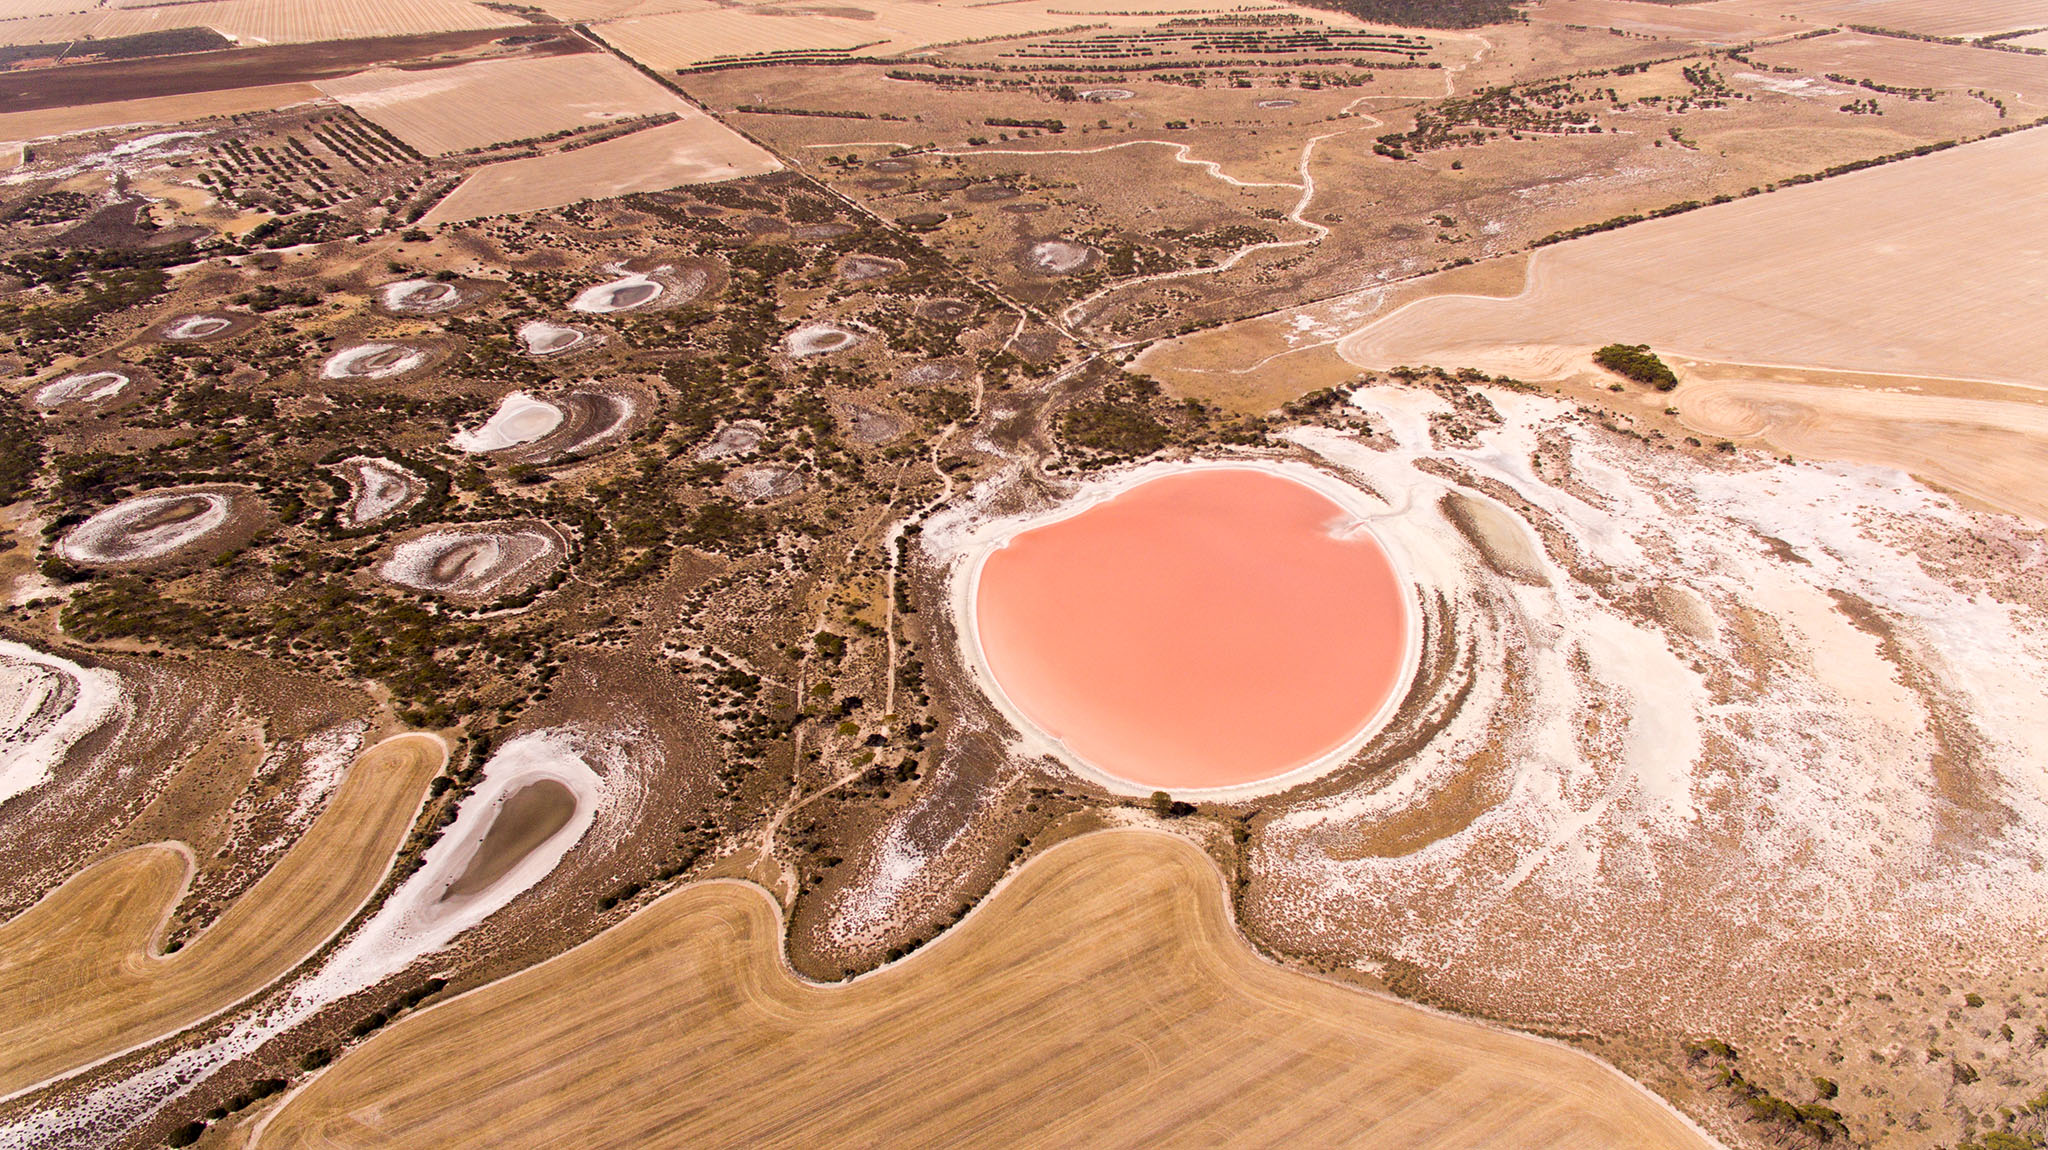 A pink salt lake creates a striking impact in this aerial landscape photo by Caro Telfer, photographer.